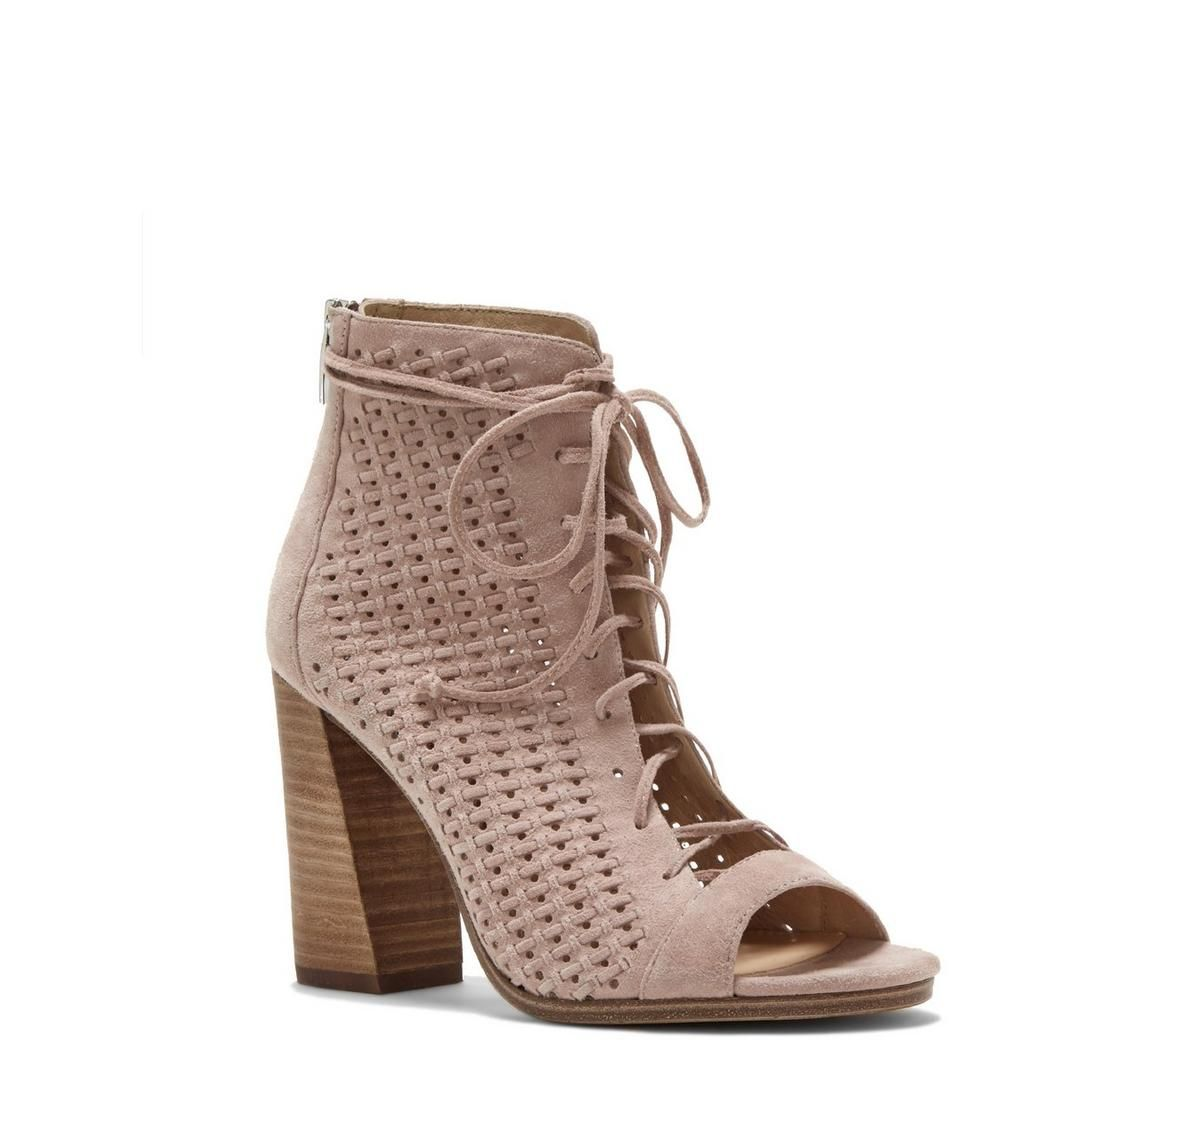 598d3882e7eb Vince Camuto Kevina Flared-heel Lace-up Bootie - Vince Camuto ...